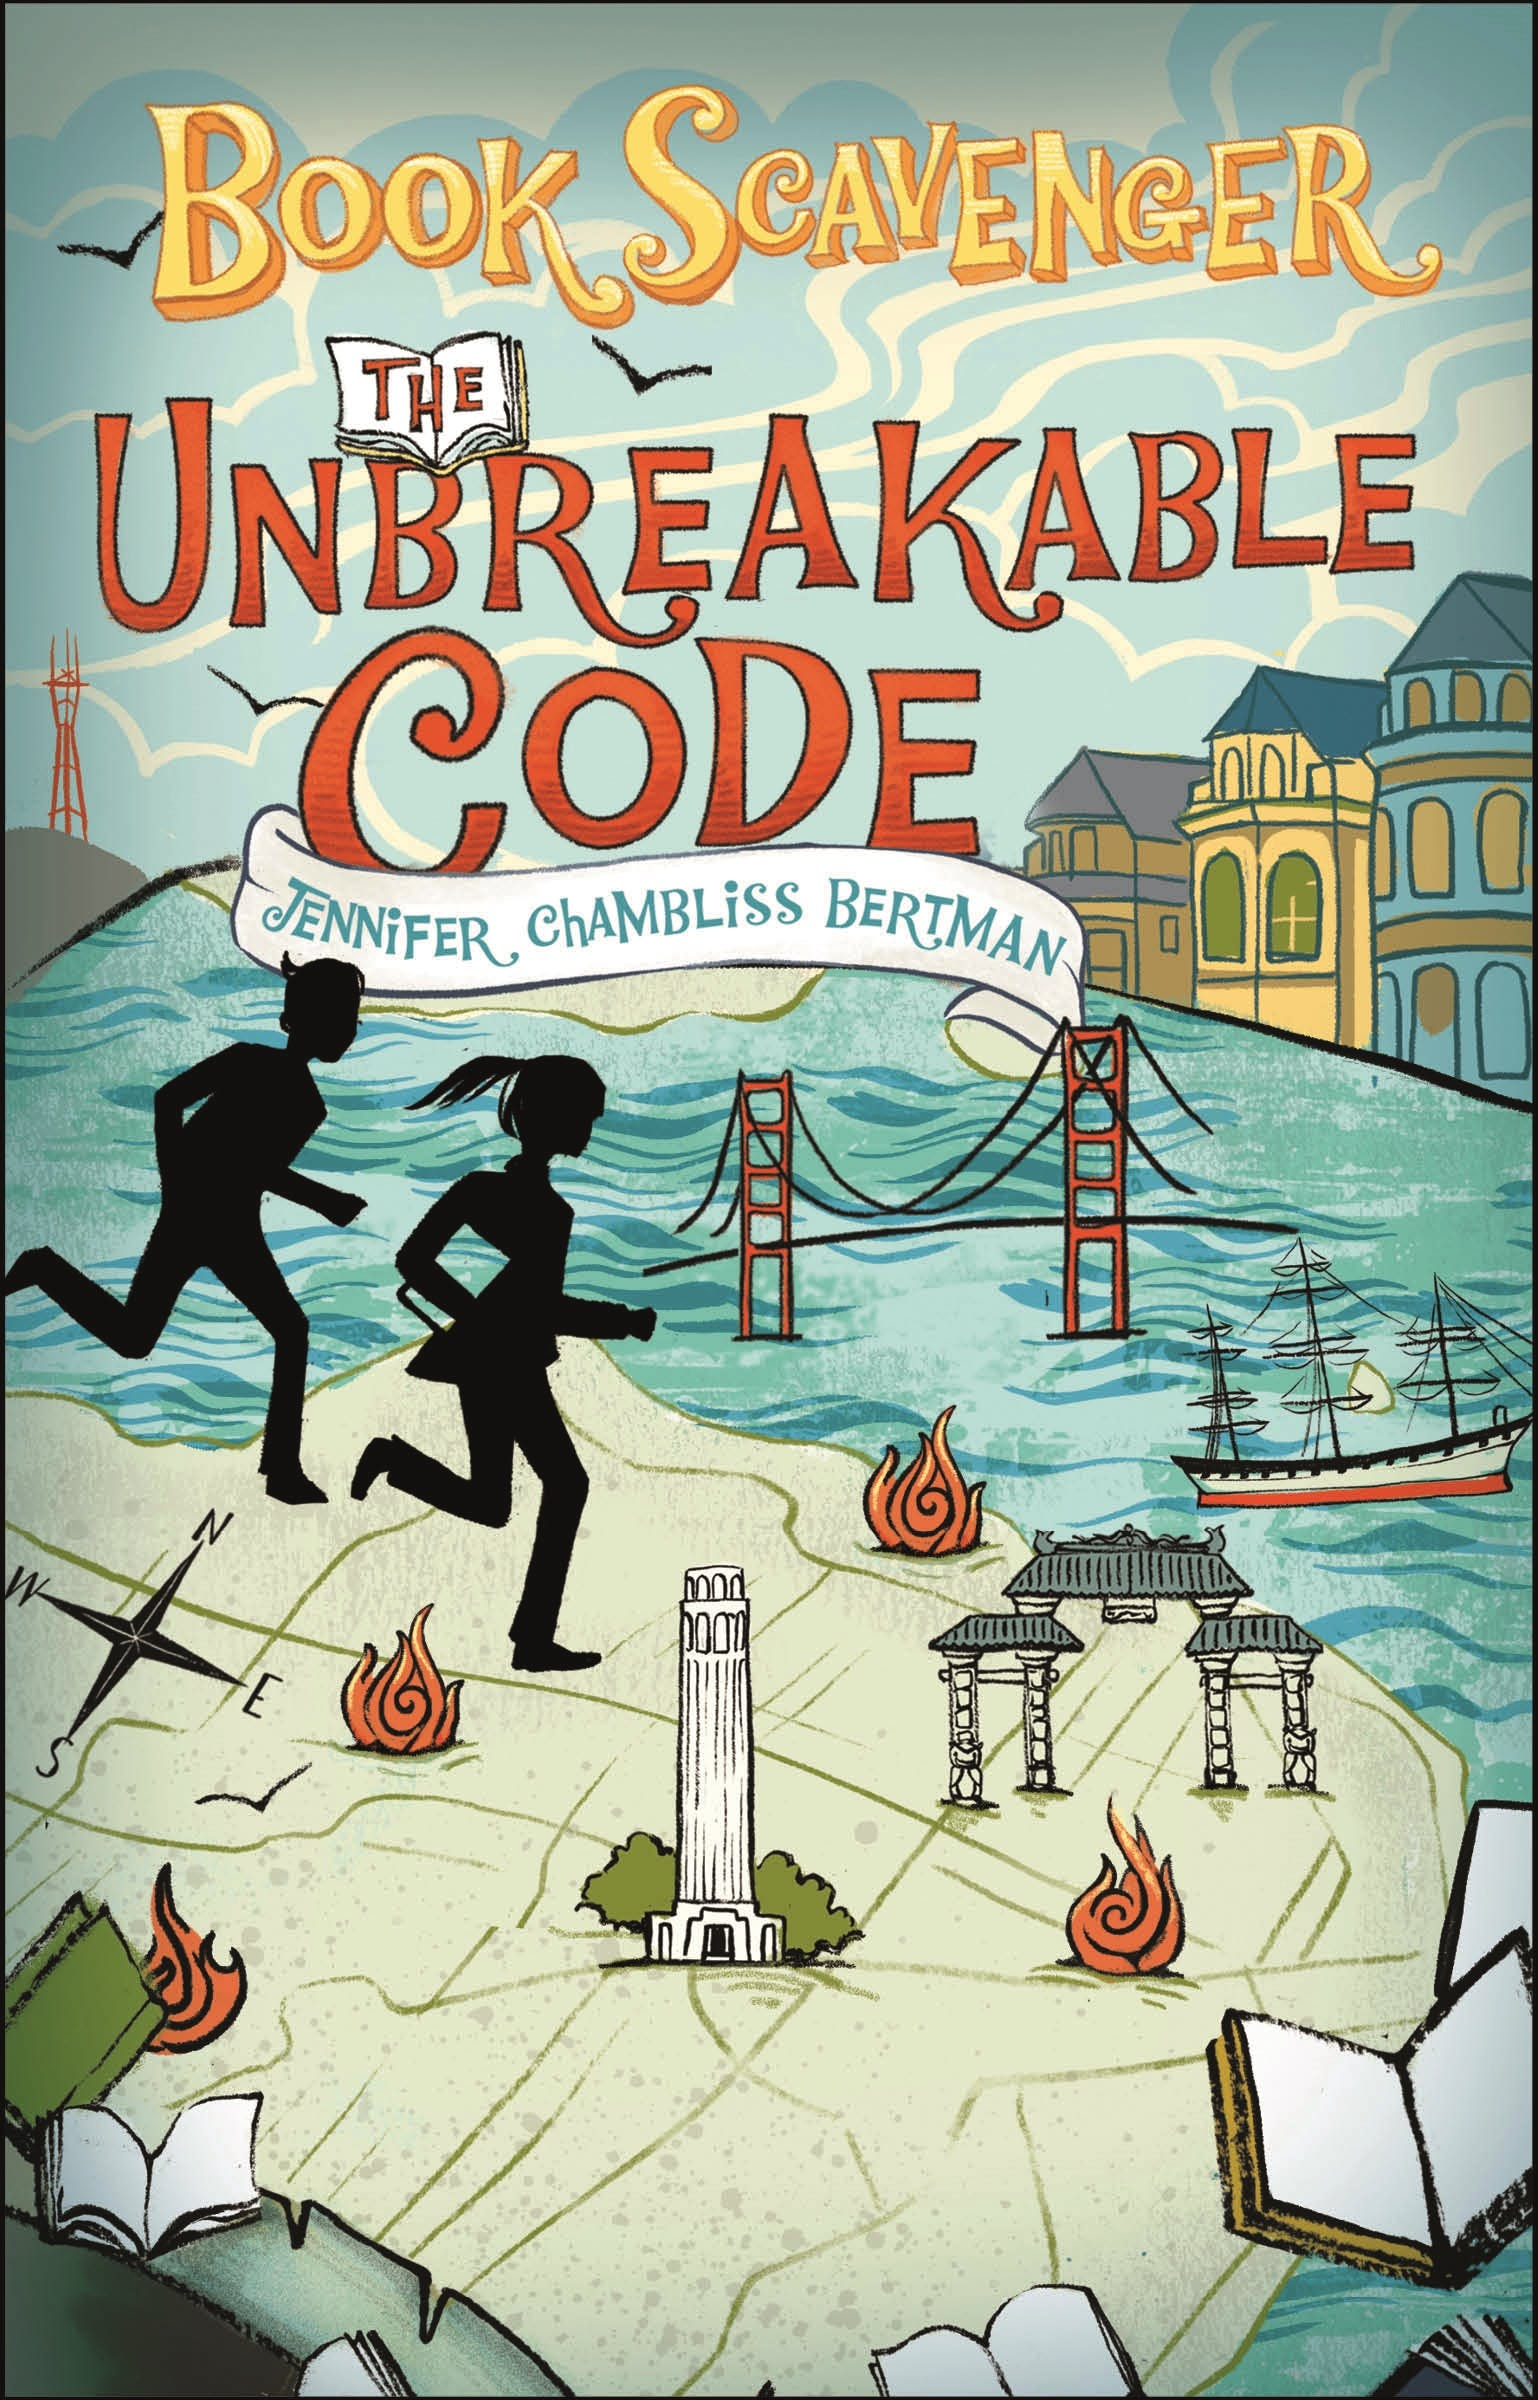 Image of The Unbreakable Code